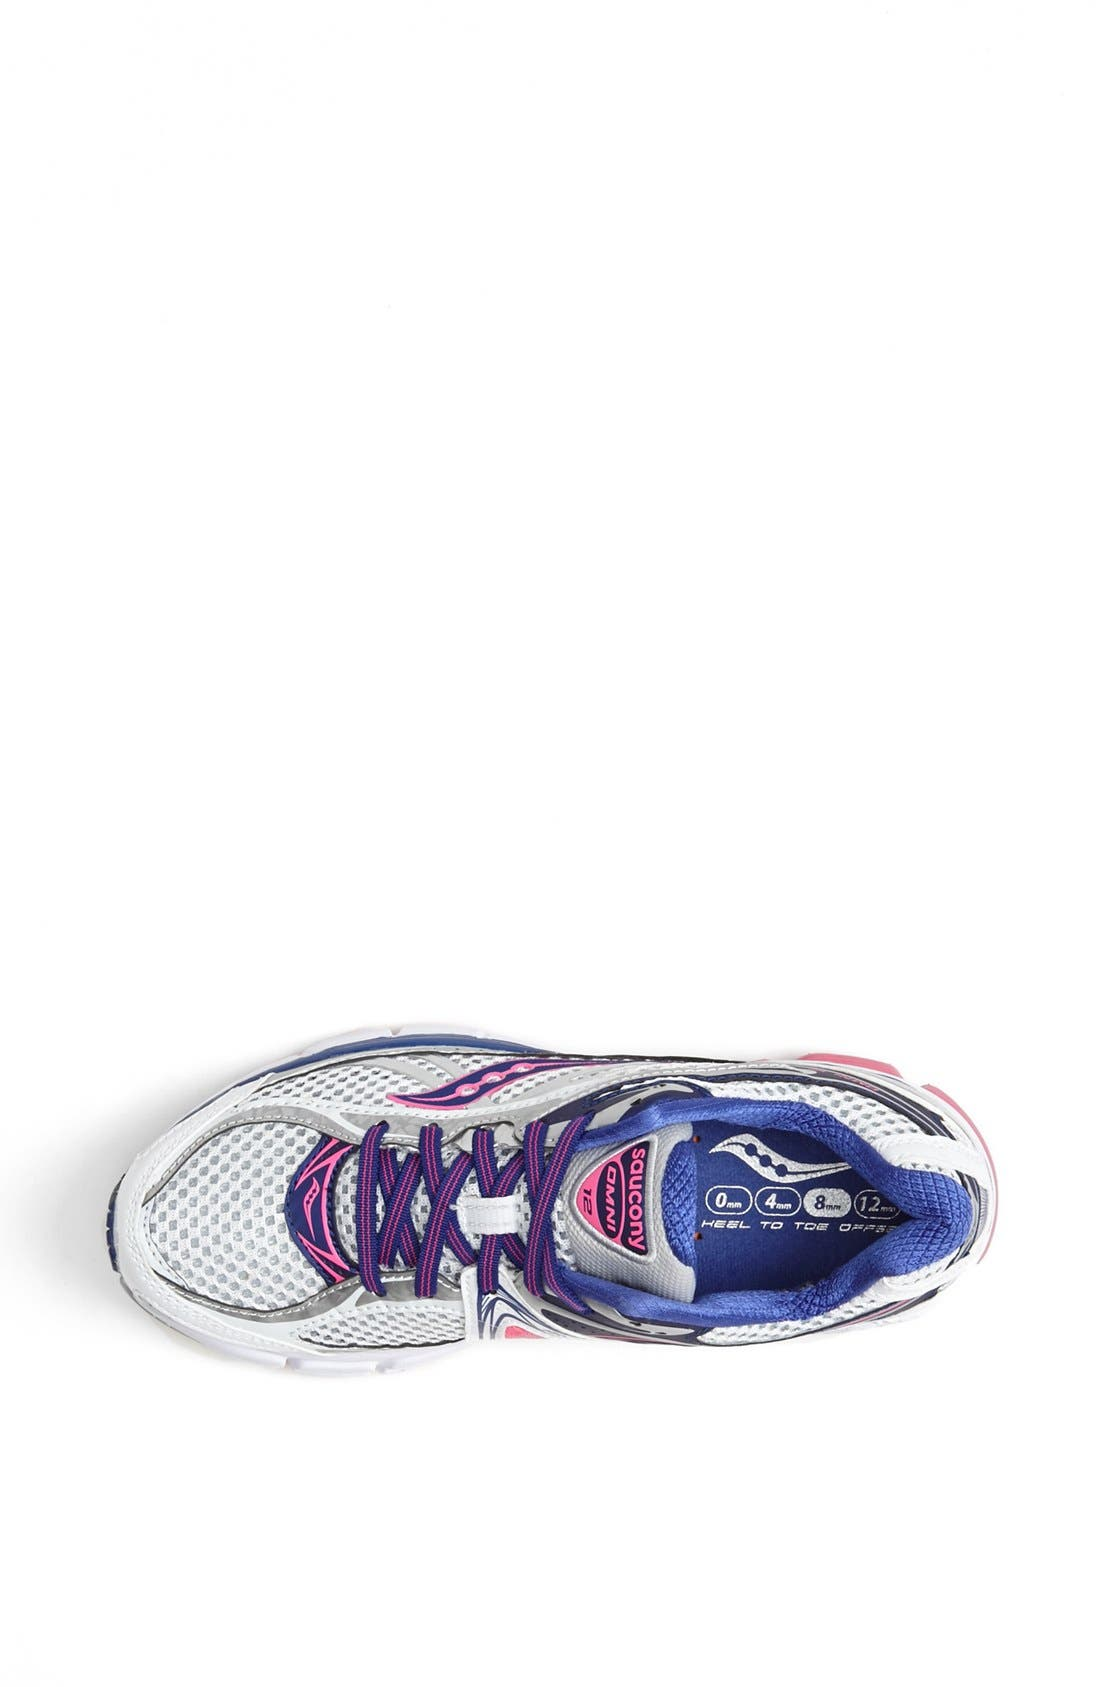 Alternate Image 3  - Saucony 'Omni 12' Running Shoe (Women)